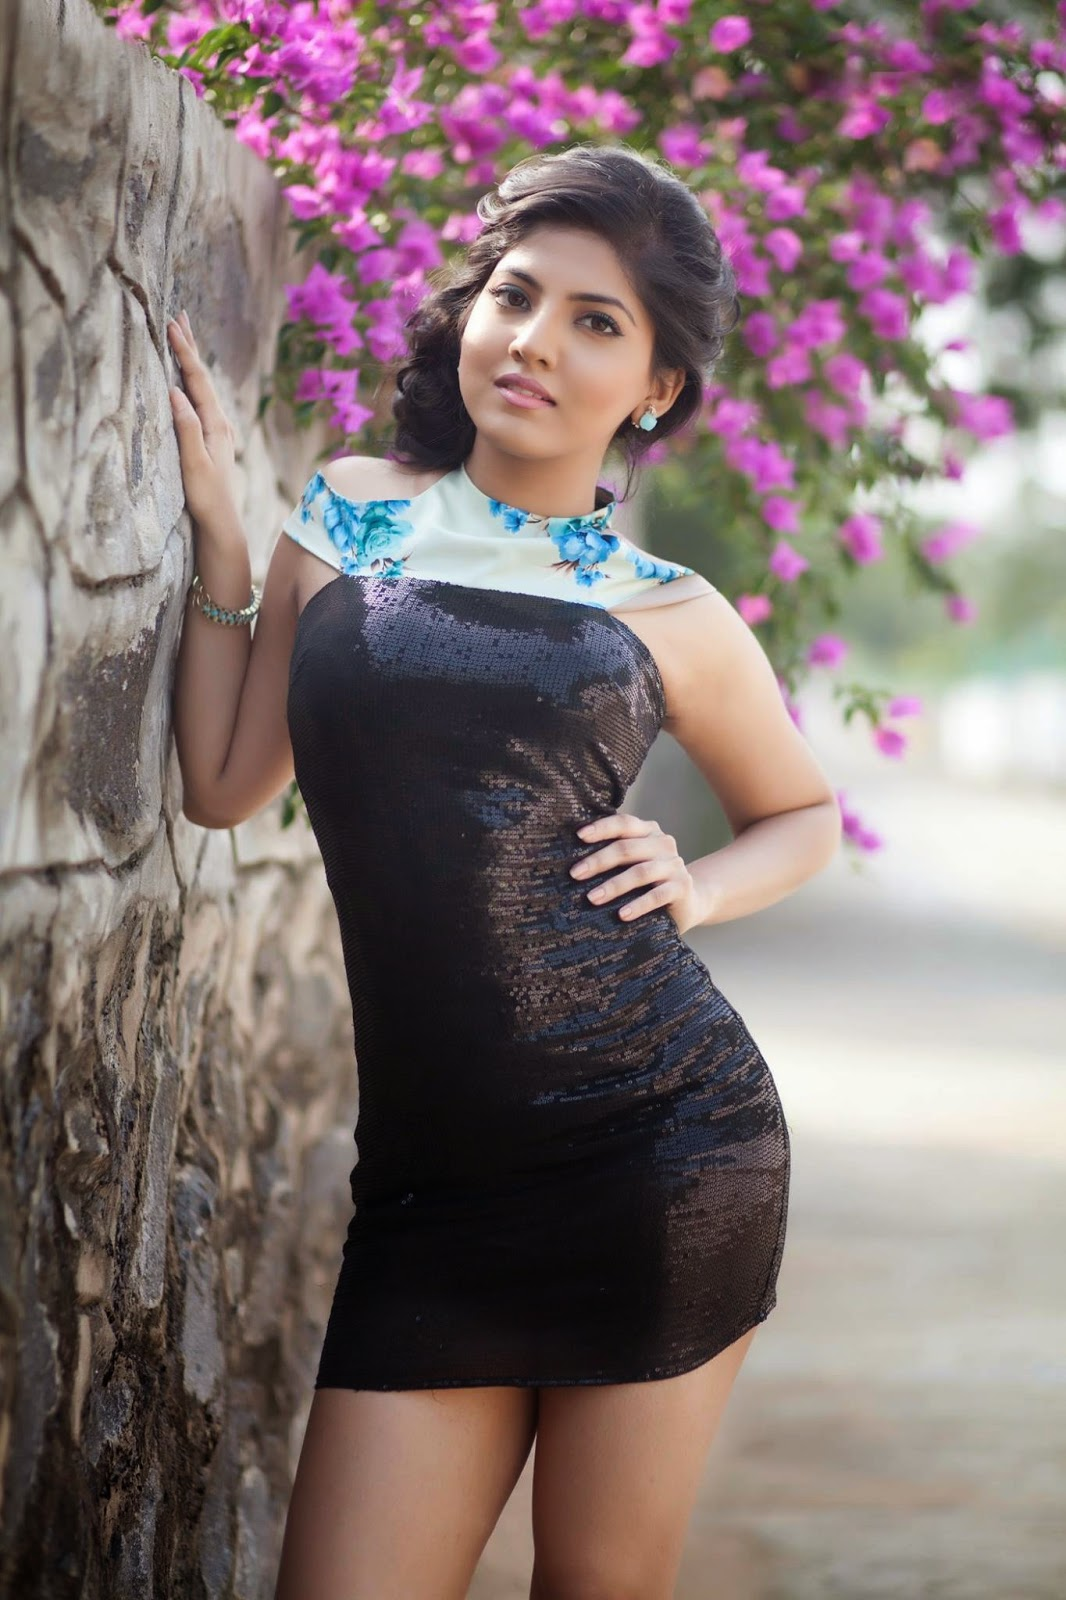 Actress Anaswara Latest Cute Hot Spicy Photoshoot Gallery